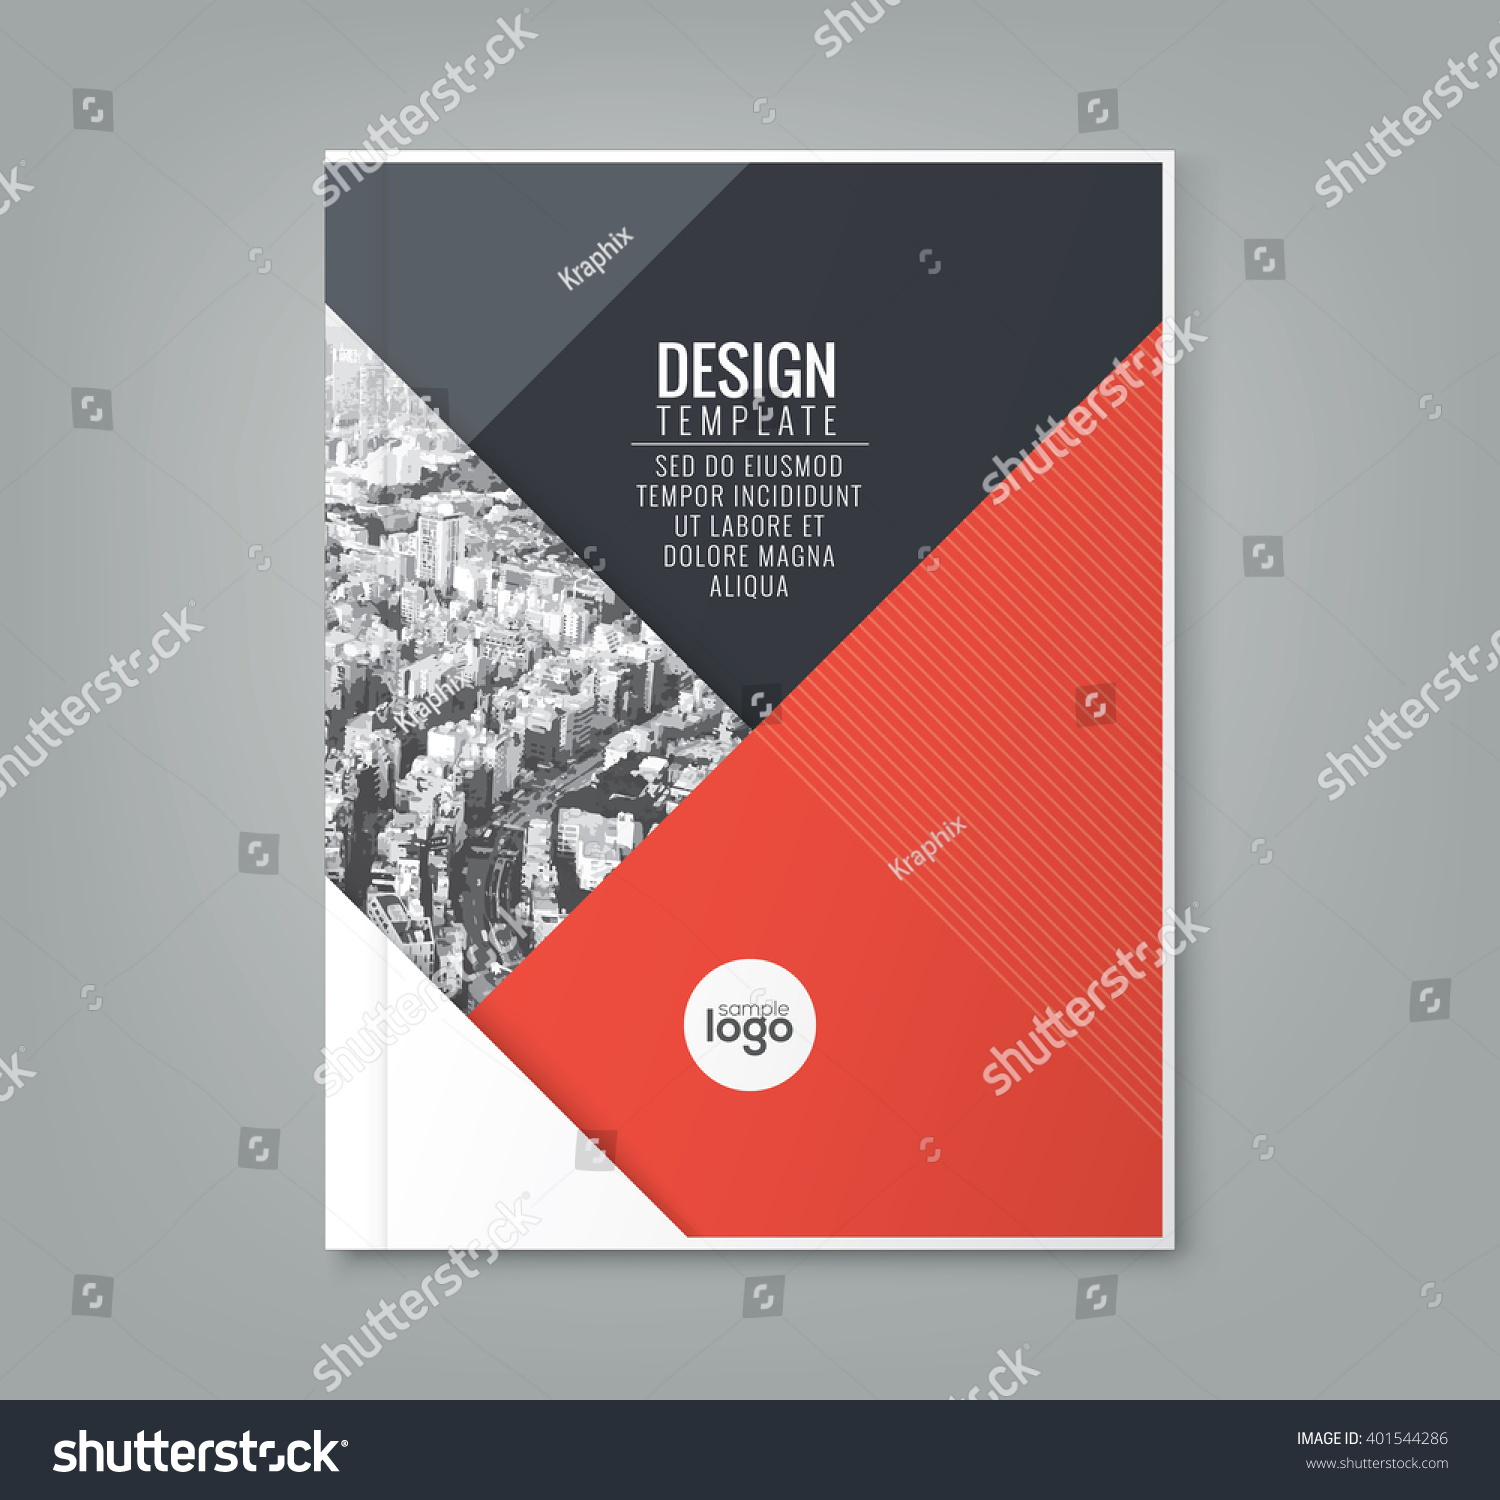 Simple Book Cover Design : Minimal simple red color design template stock vector